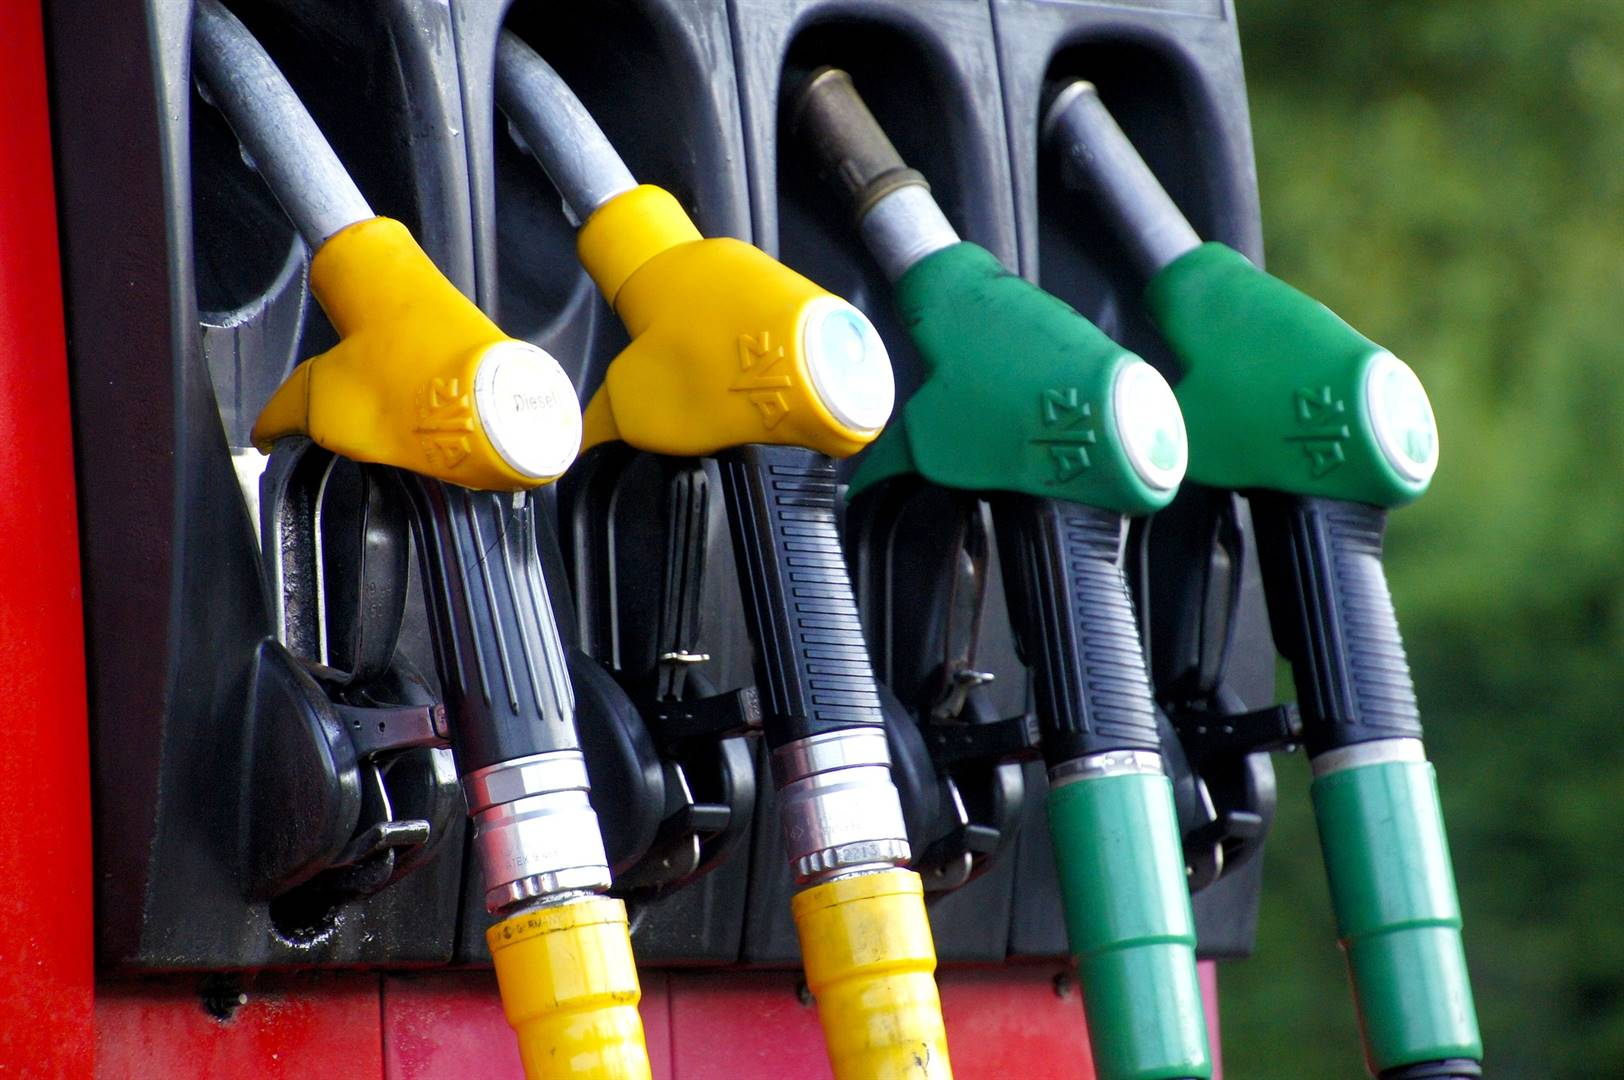 UK puts army on standby as fuel pumps run dry | Fin24